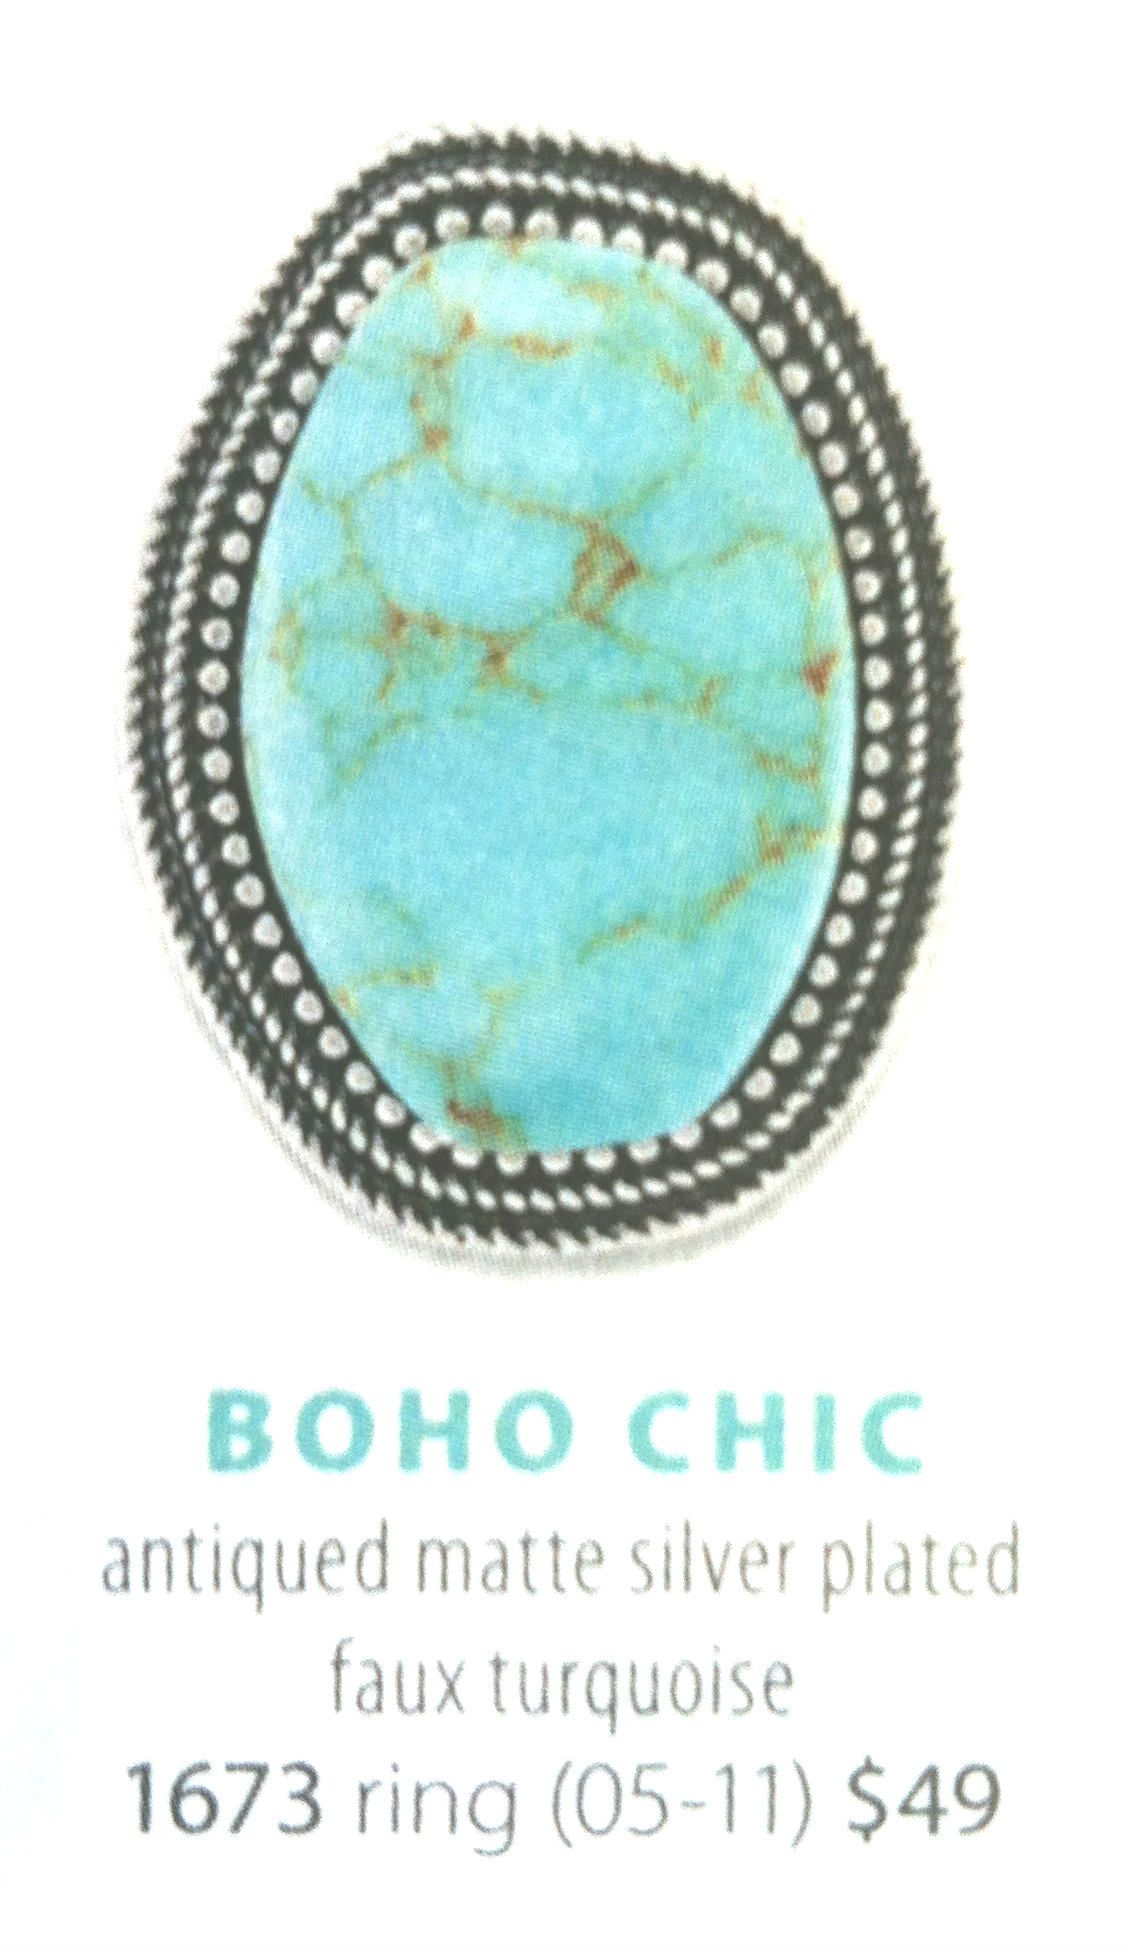 Here is the Boho Chic Ring look for the matching necklace